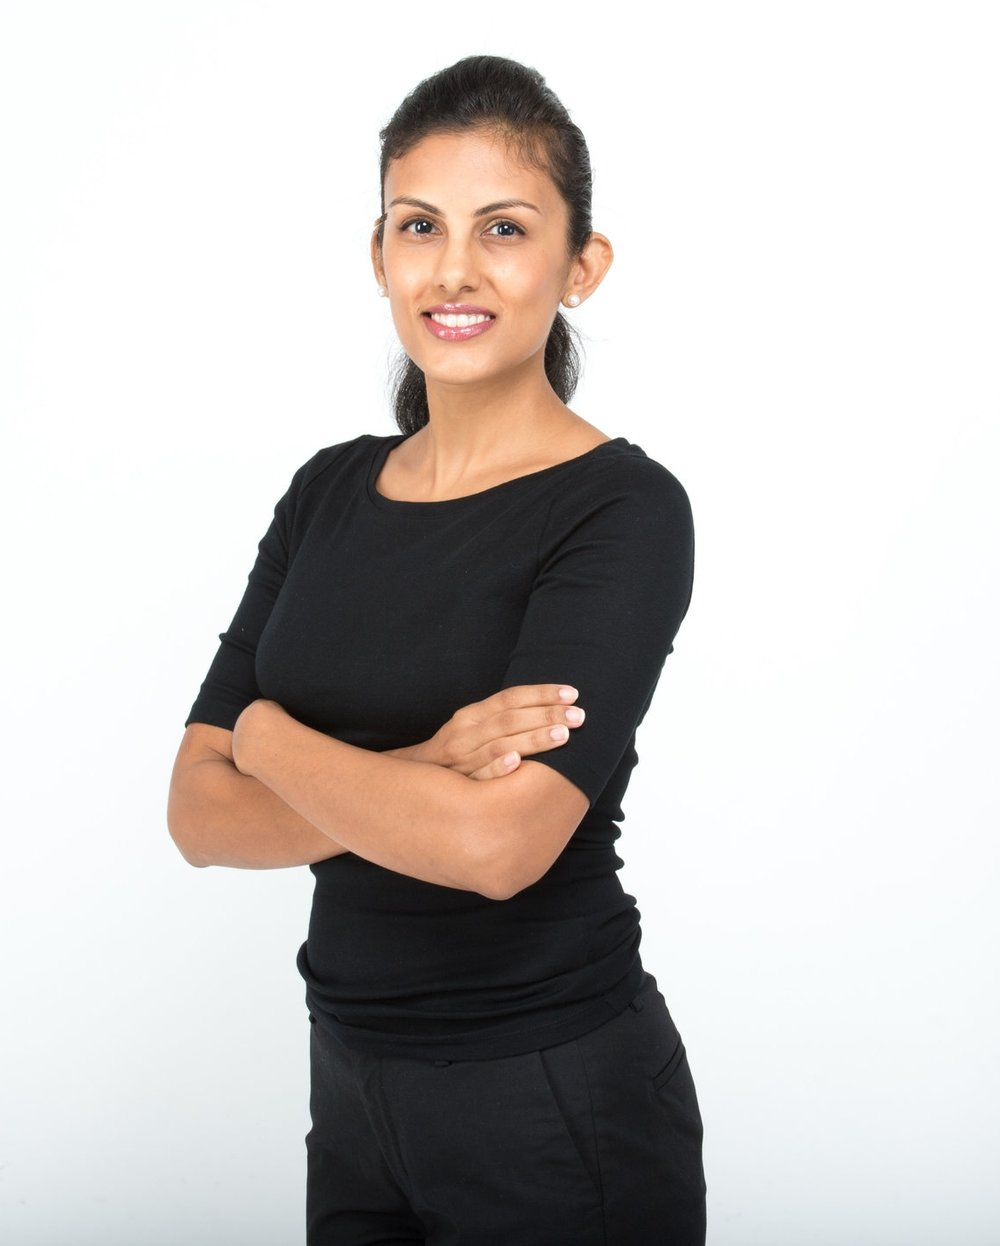 Preet IFC's Women's Health Physiotherapist Singapore